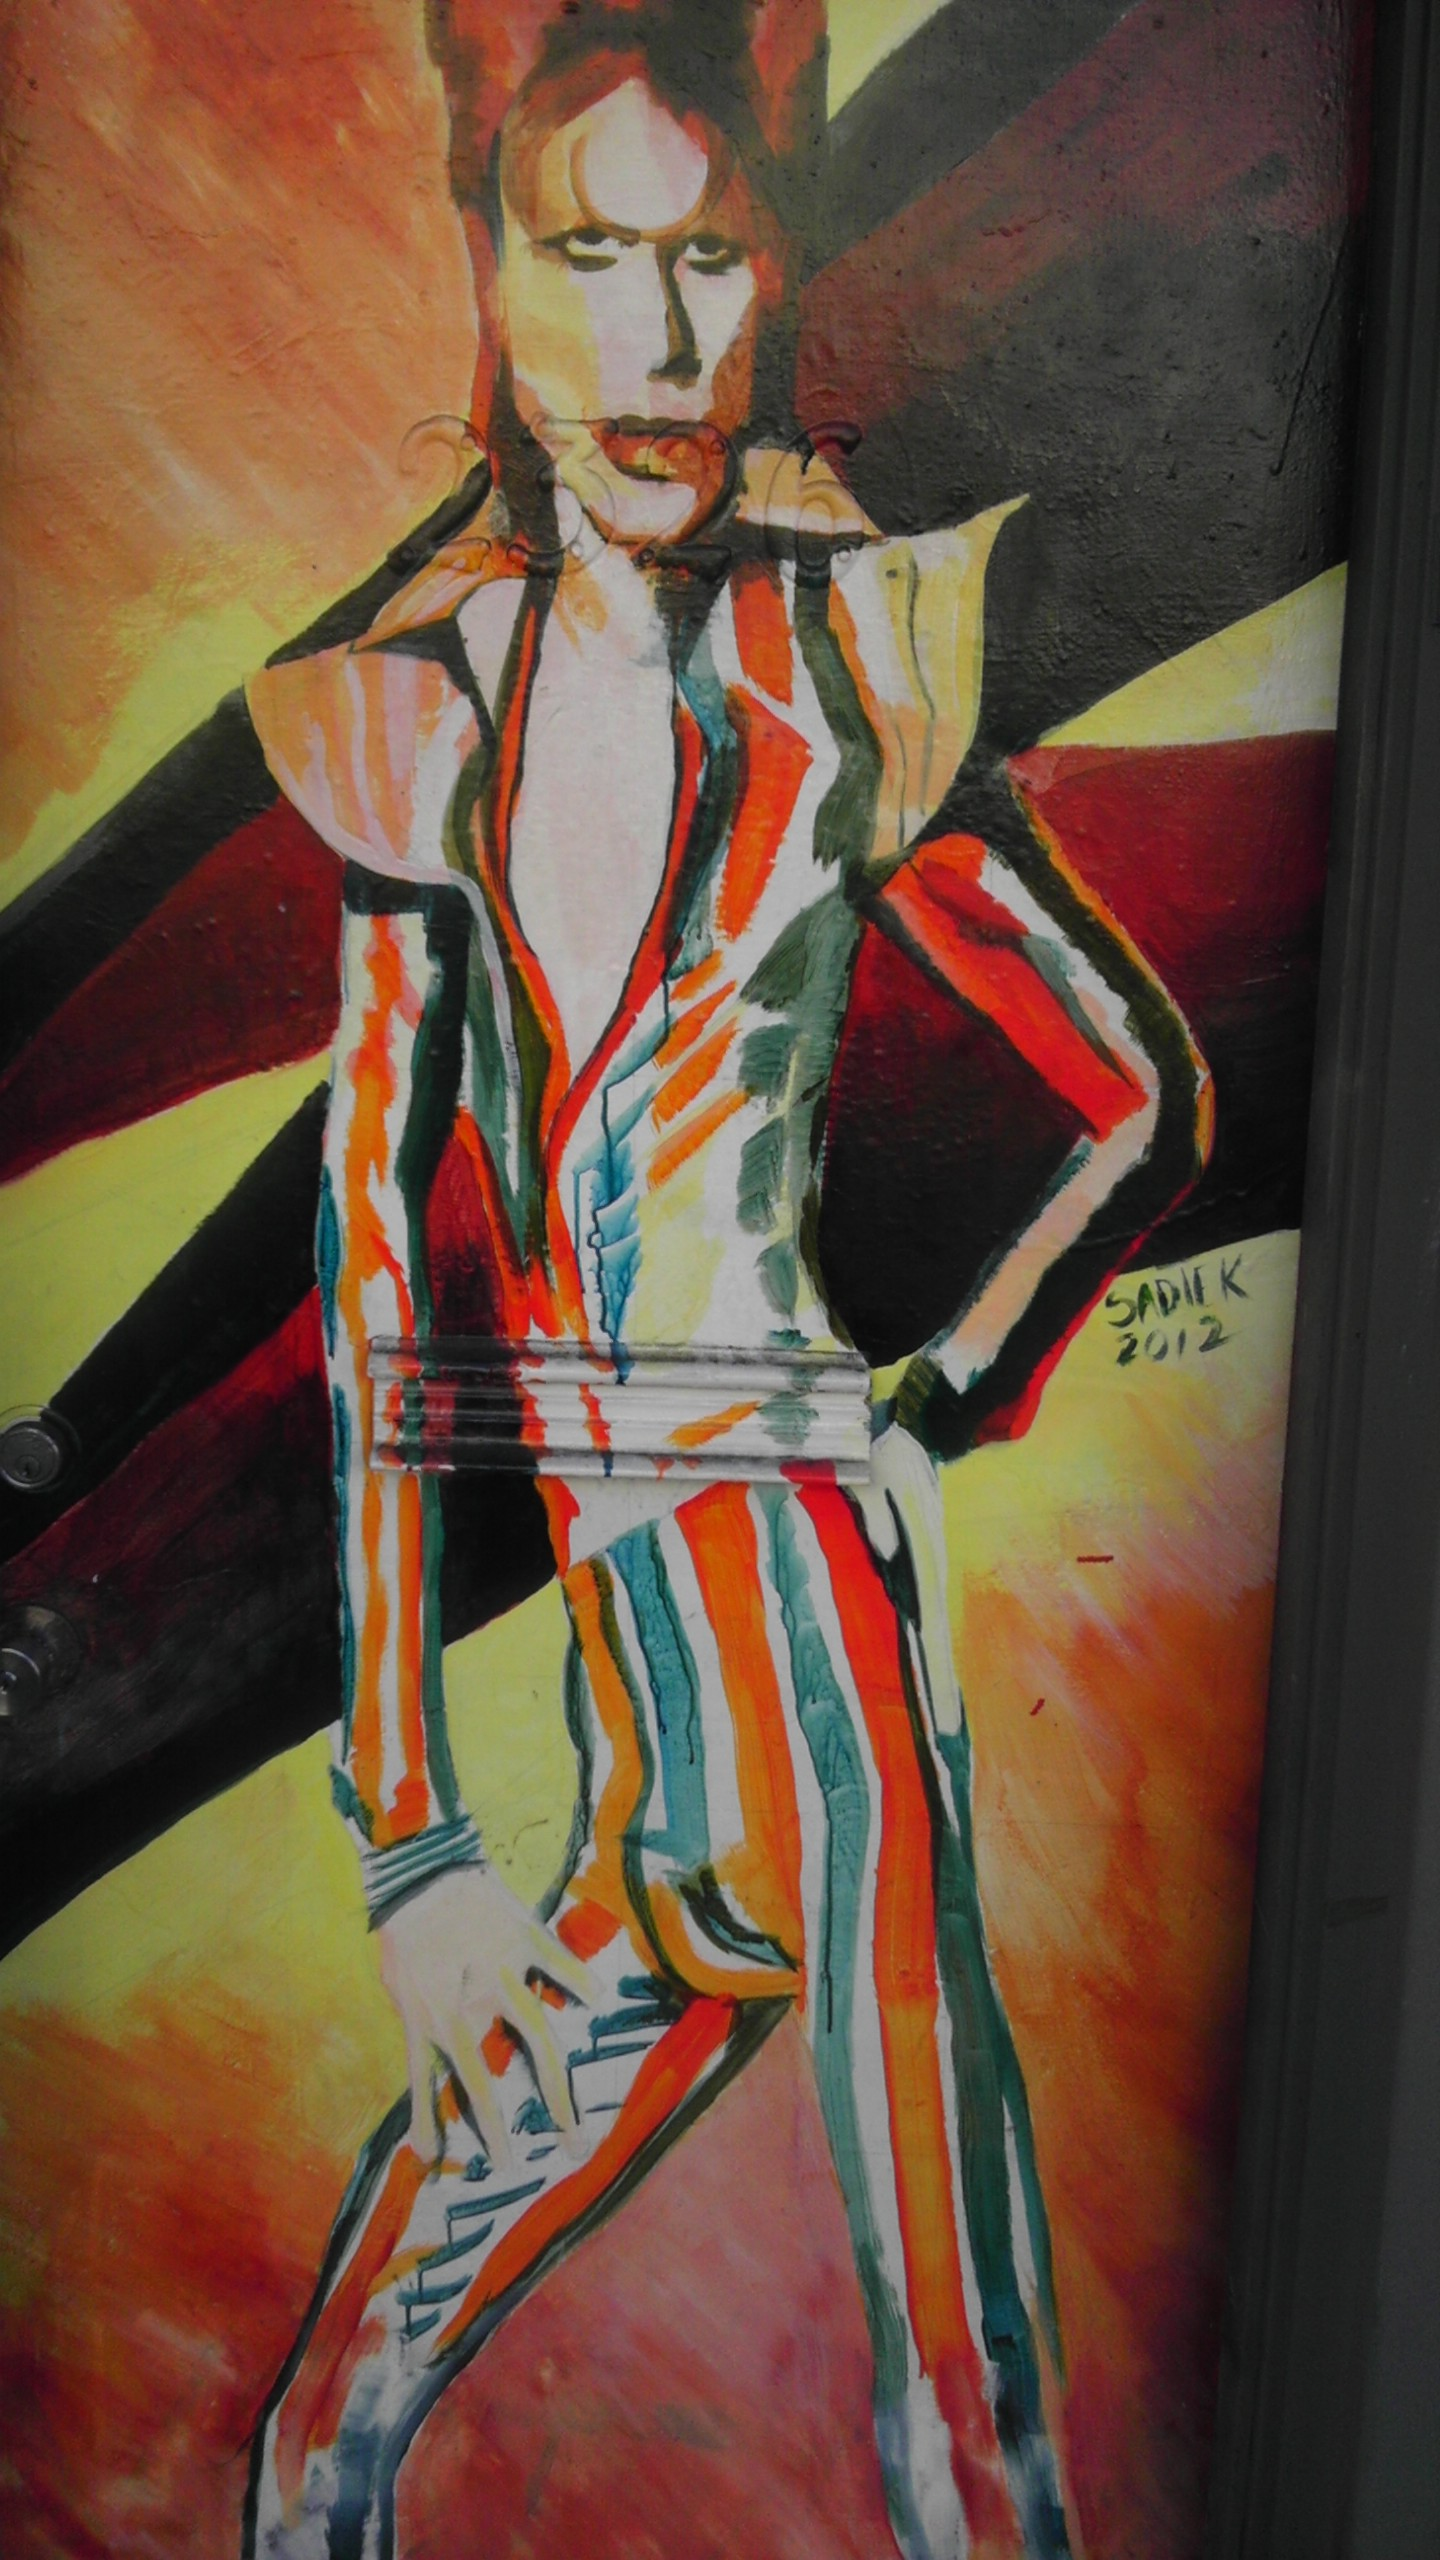 David Bowie painting in the mission district San Francisco